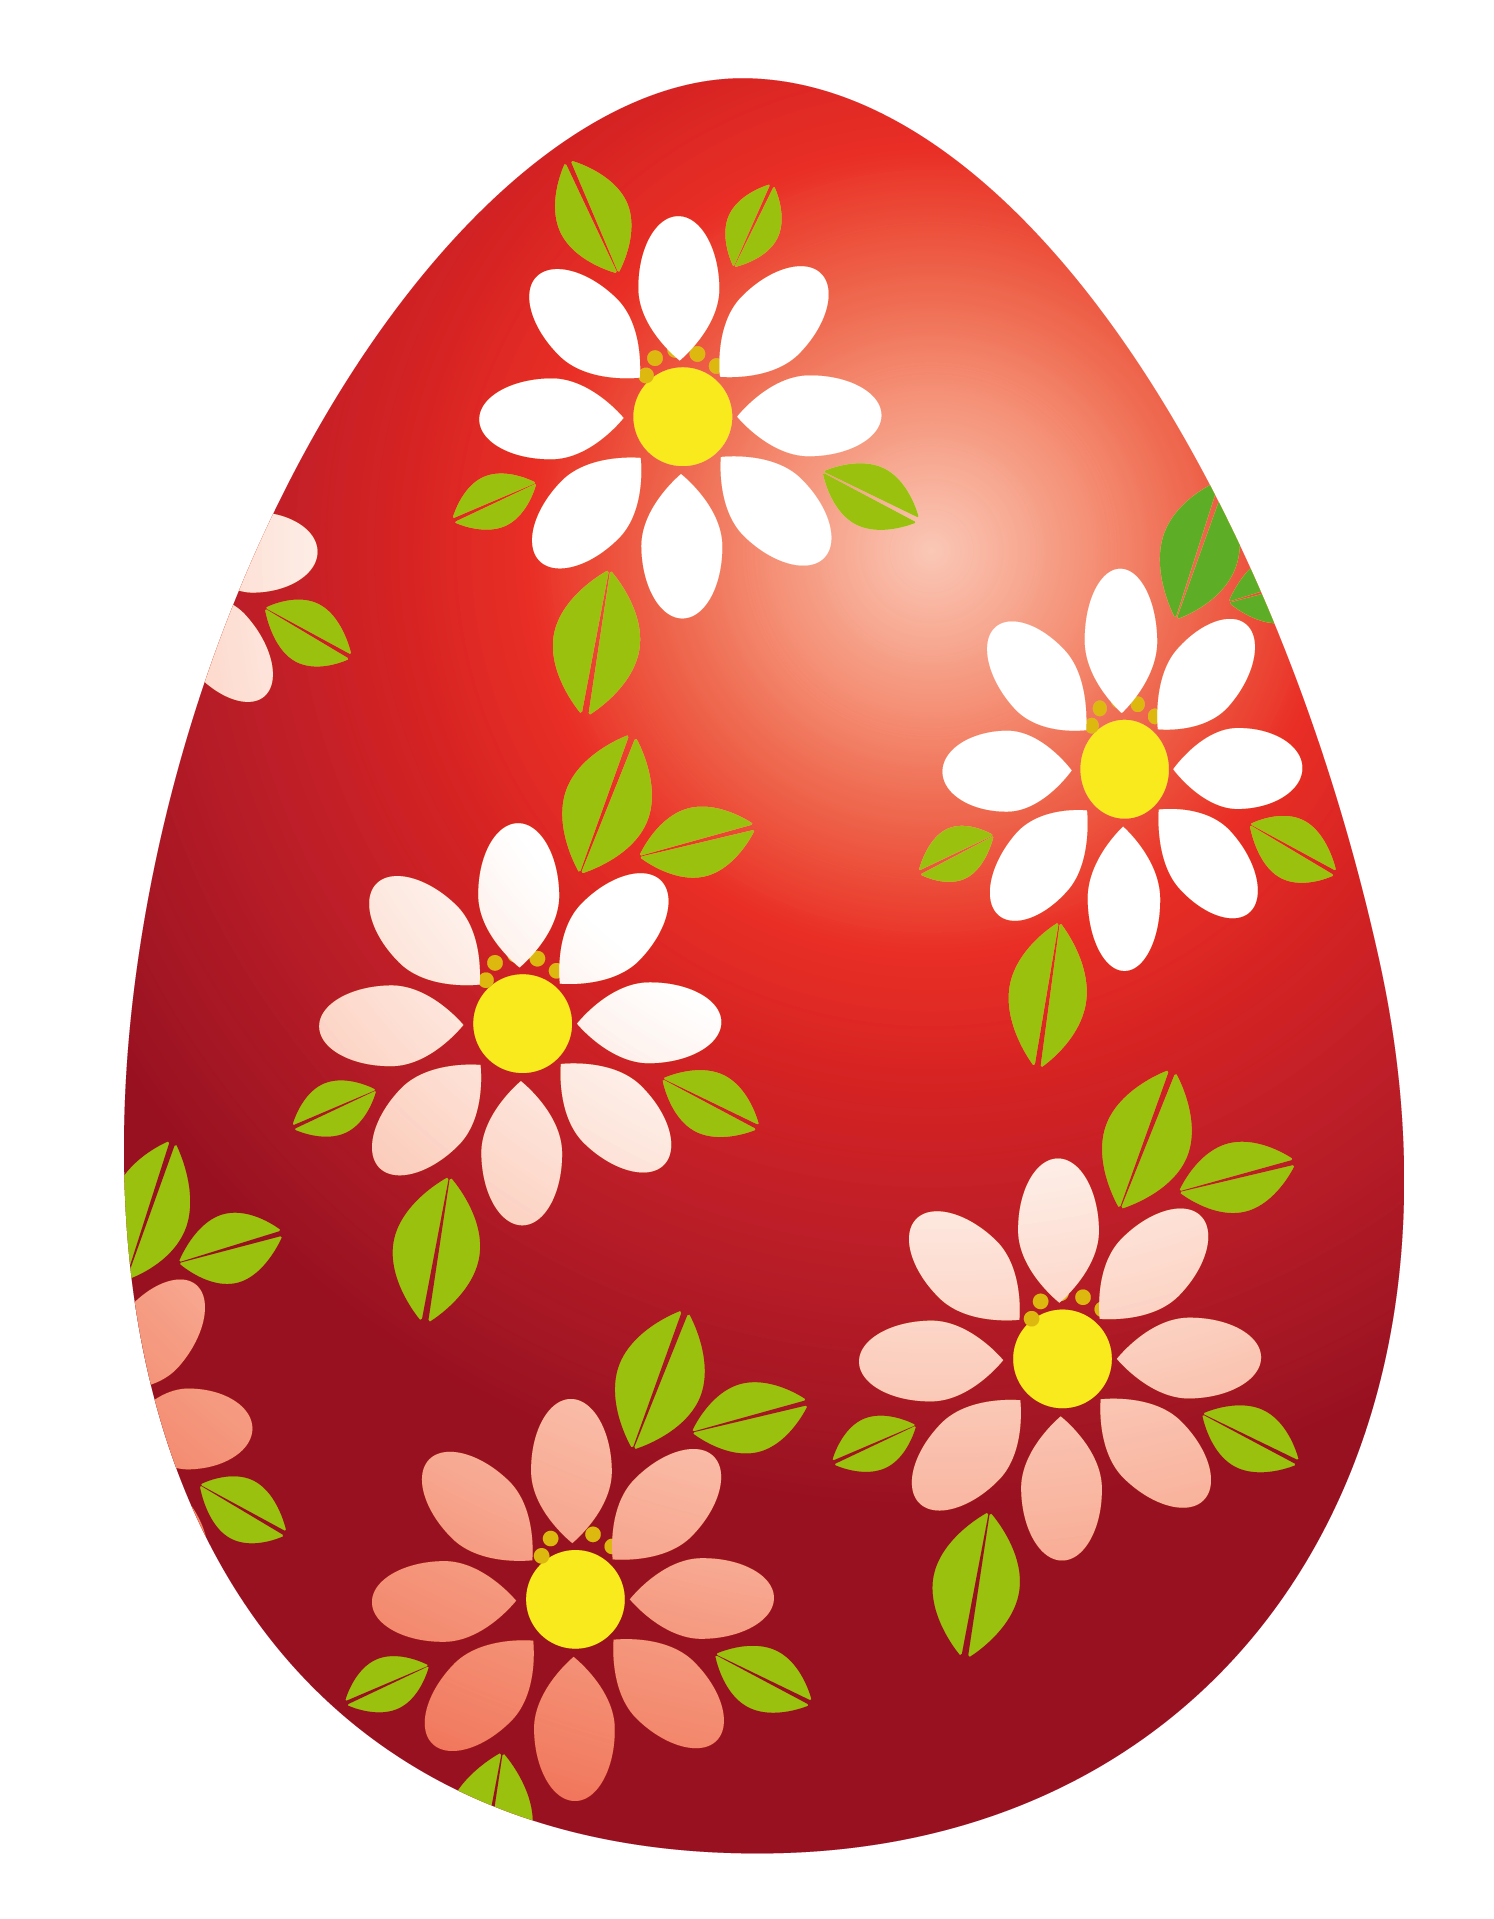 Easter red egg with flowers png clipart picture